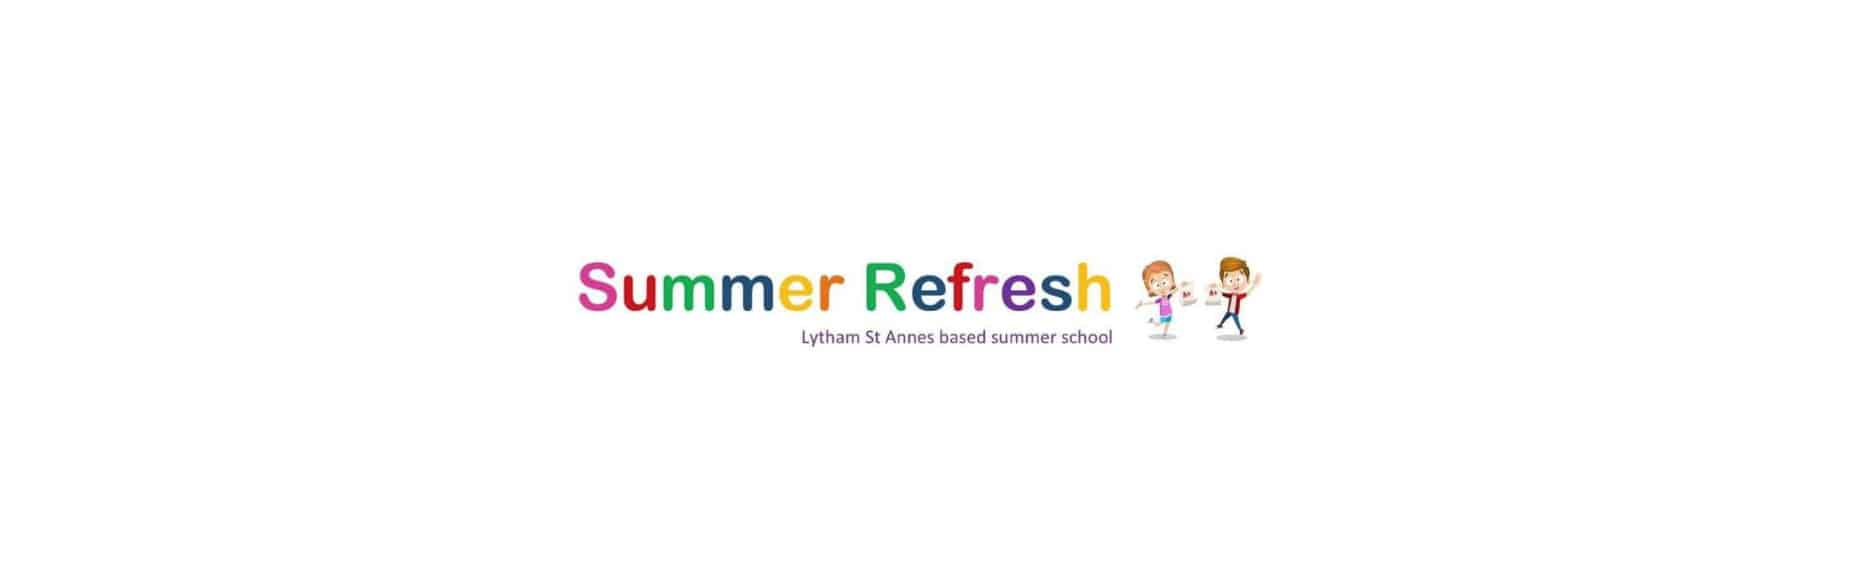 Tutoring for local kids offered in Summer Refresh